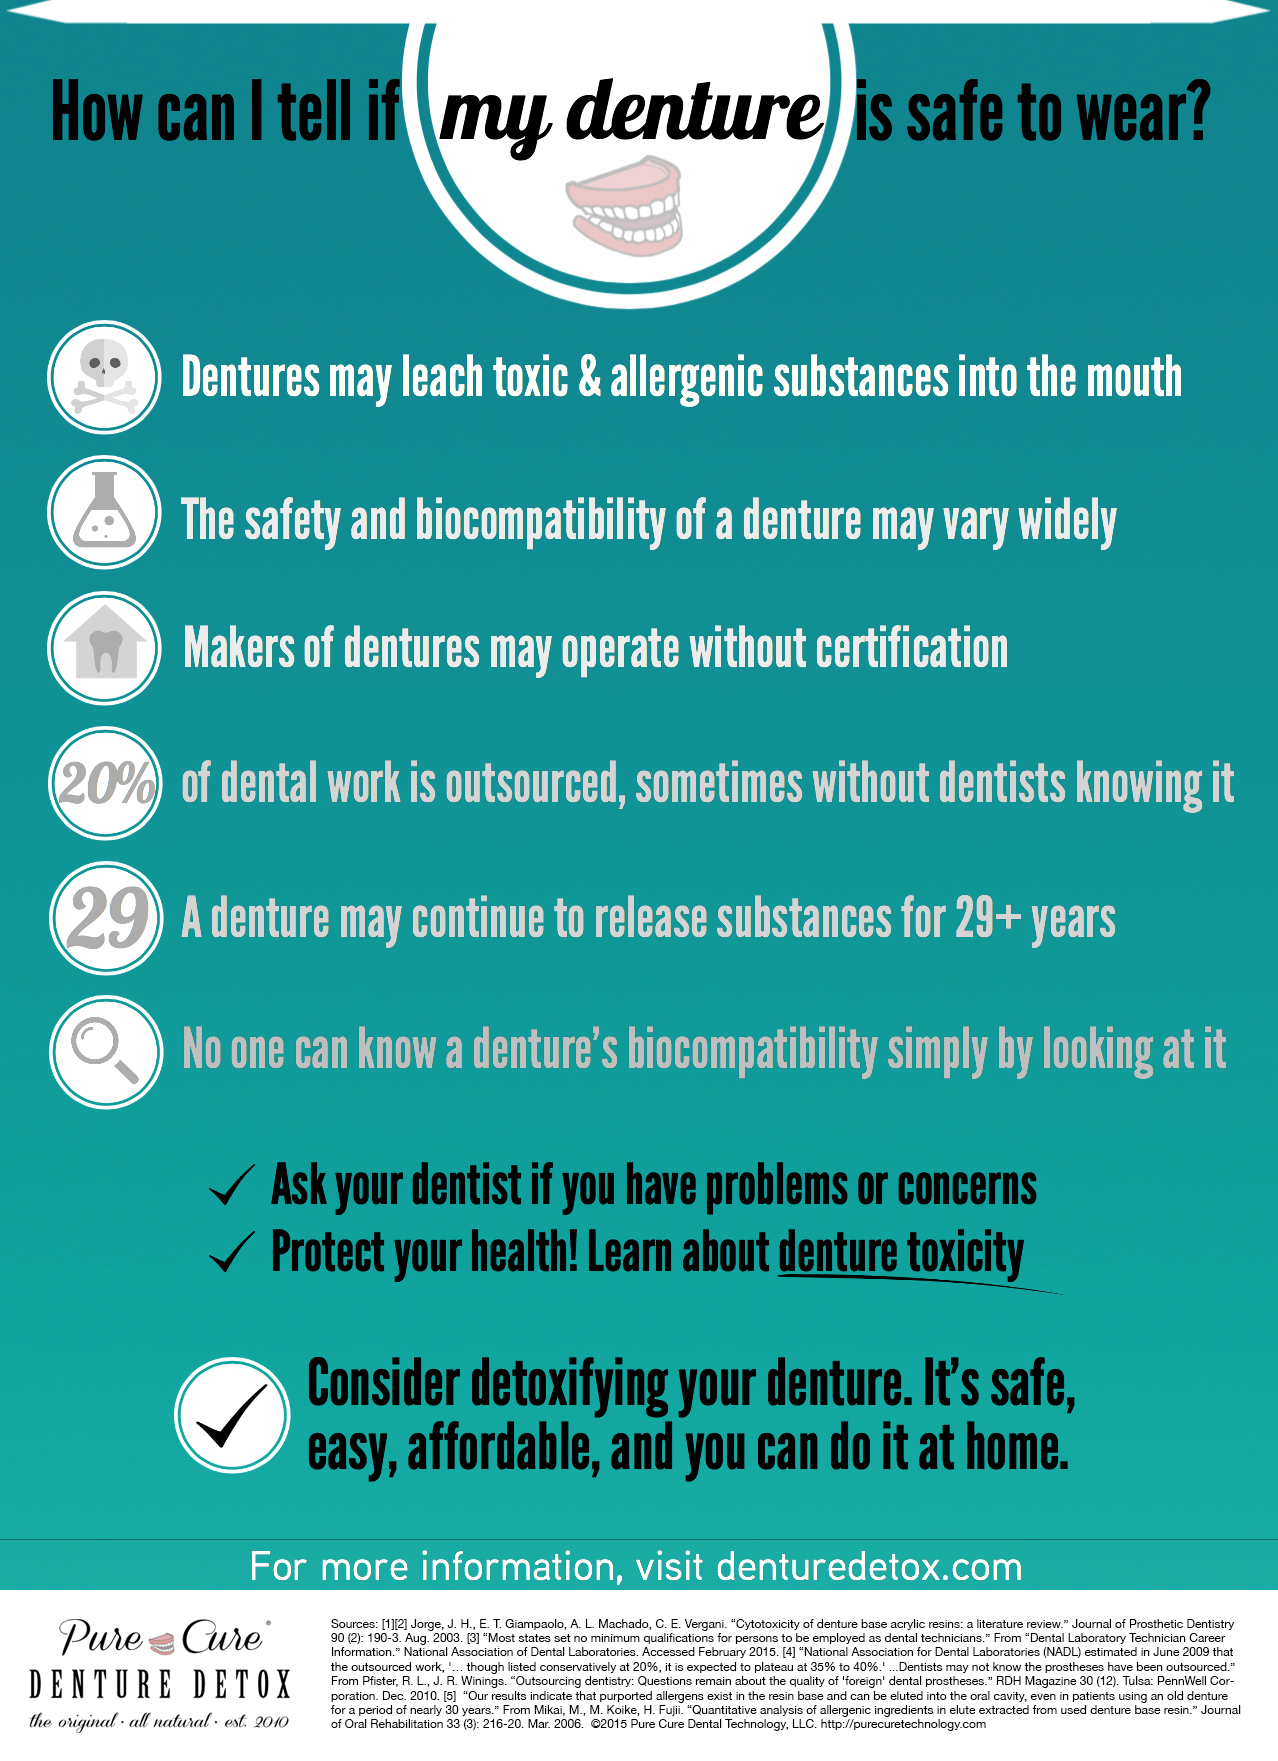 denture-detox-infographic-allergic-toxic-safe-denture